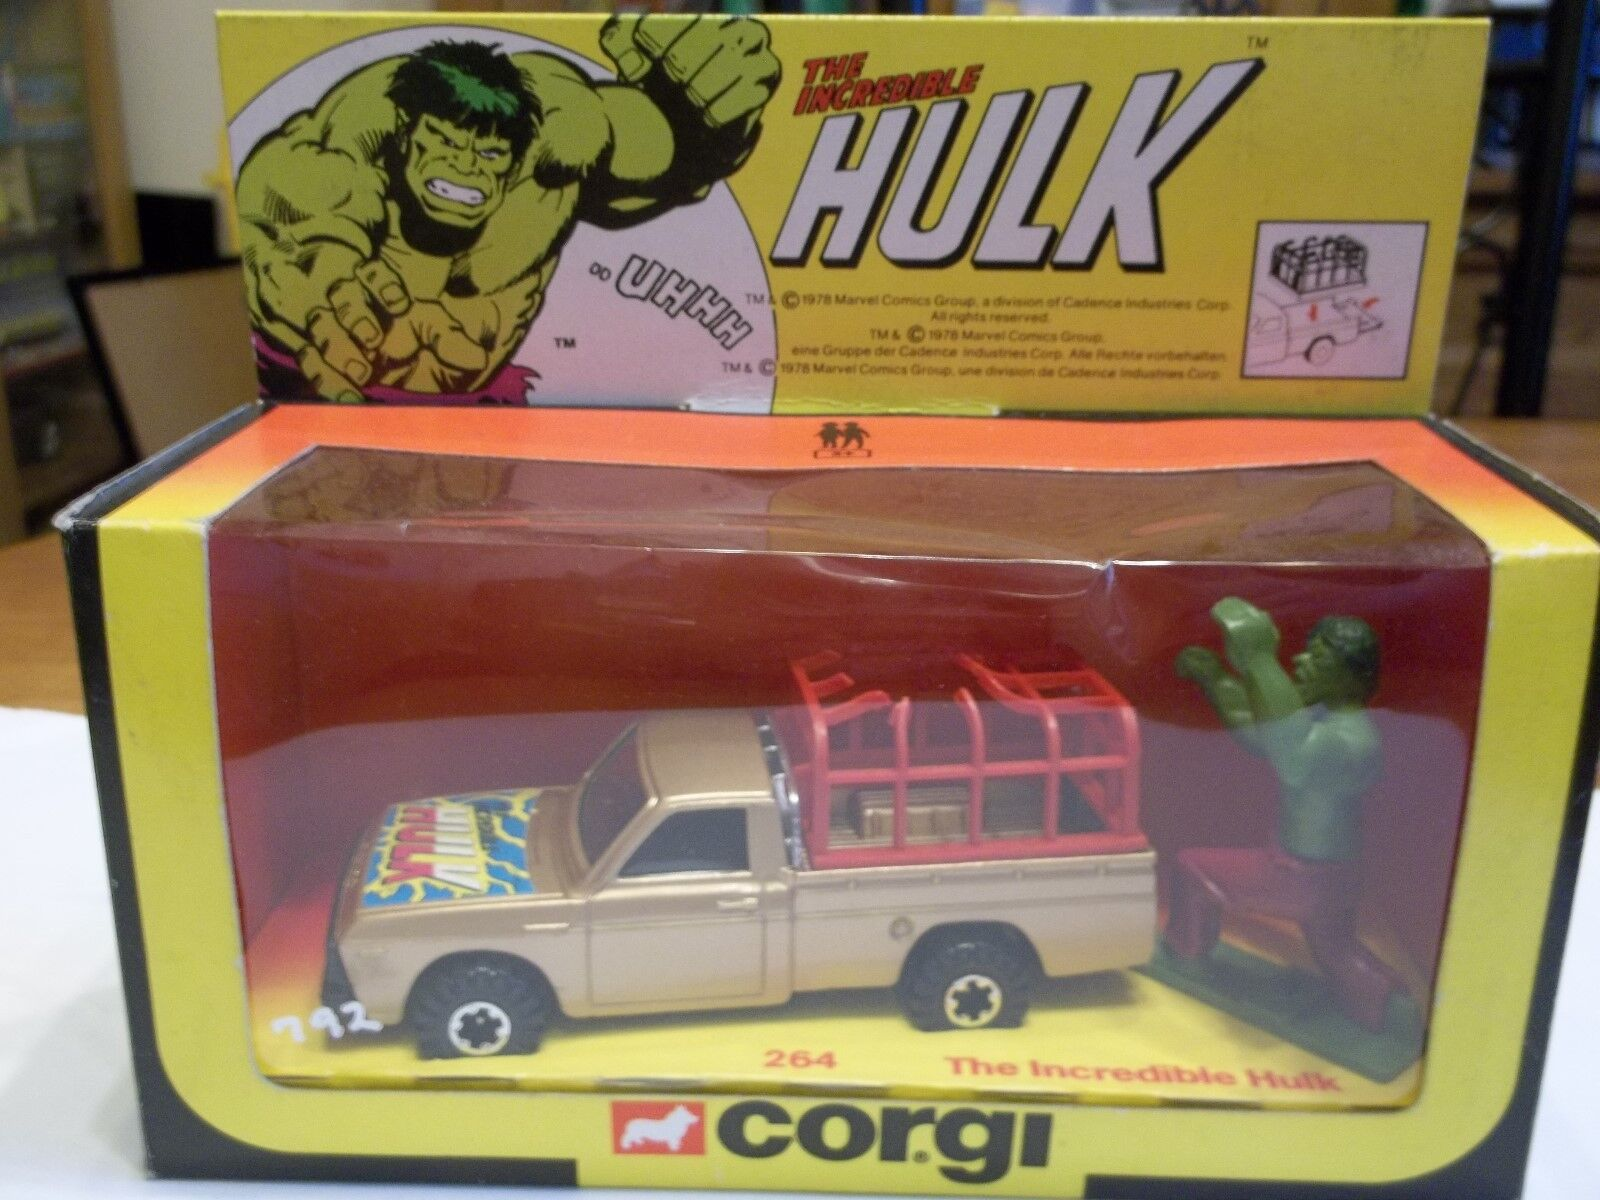 Corgi 264 The Incredible Hulk Mazda - Mint in Excellent Box